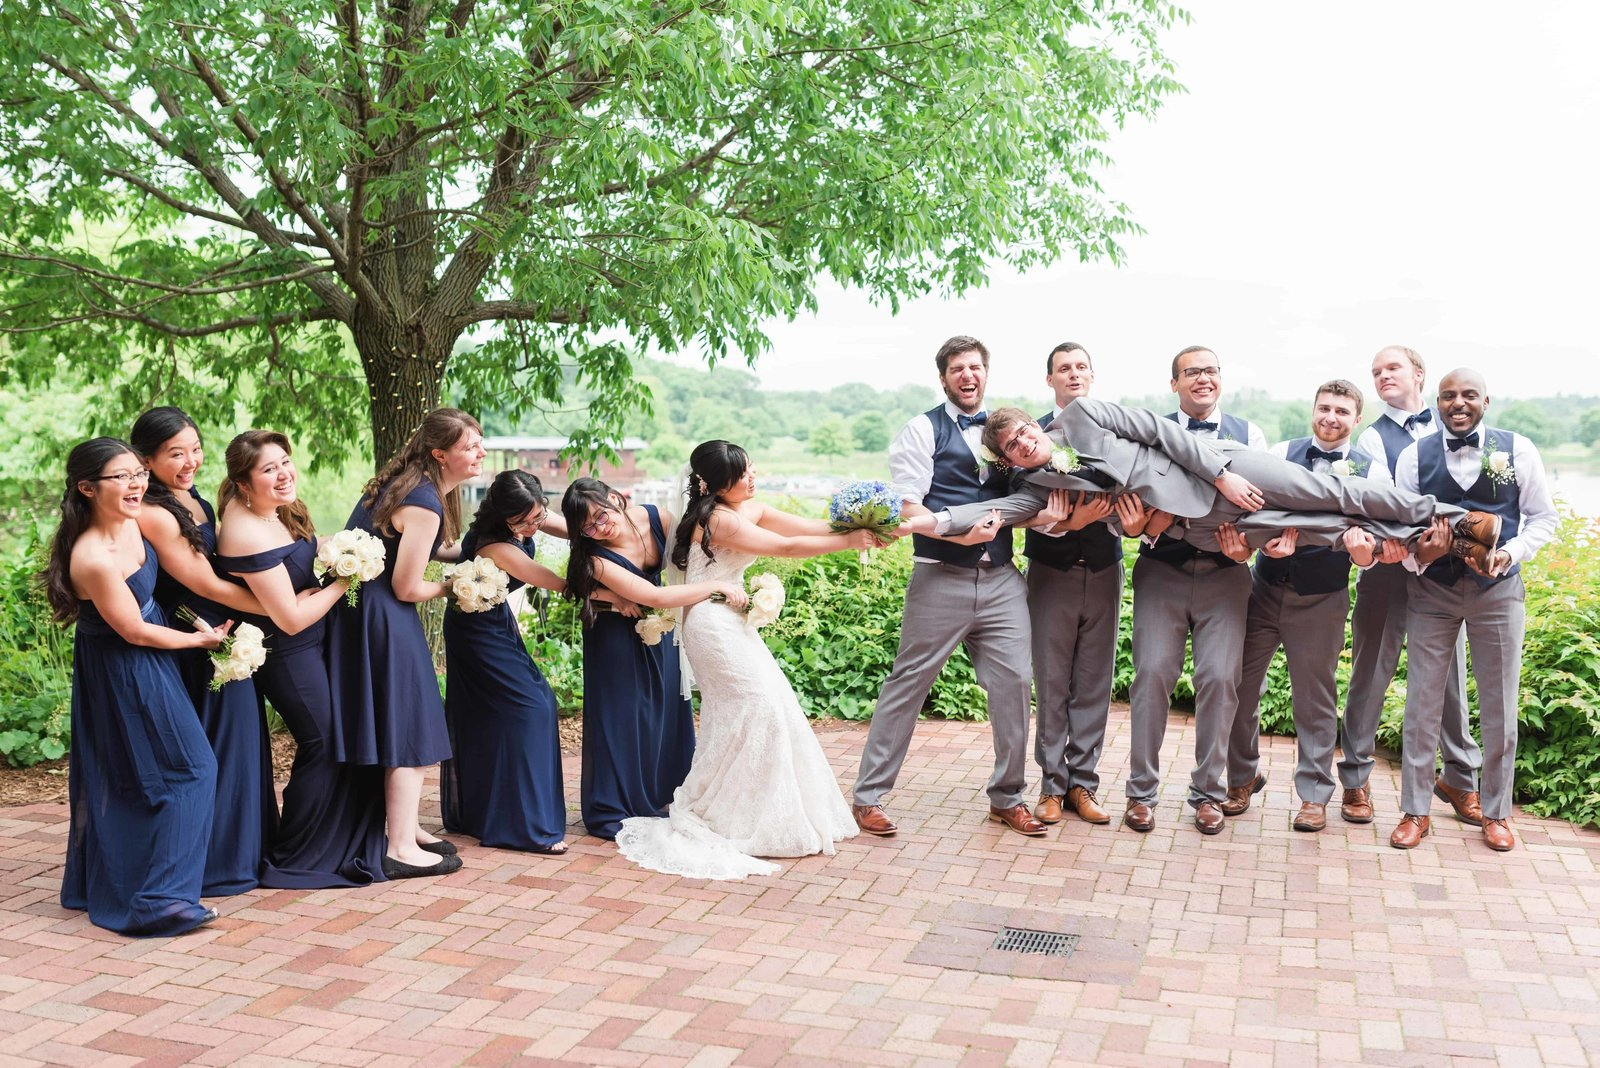 Bride and Groom playing tug of war with bridal party